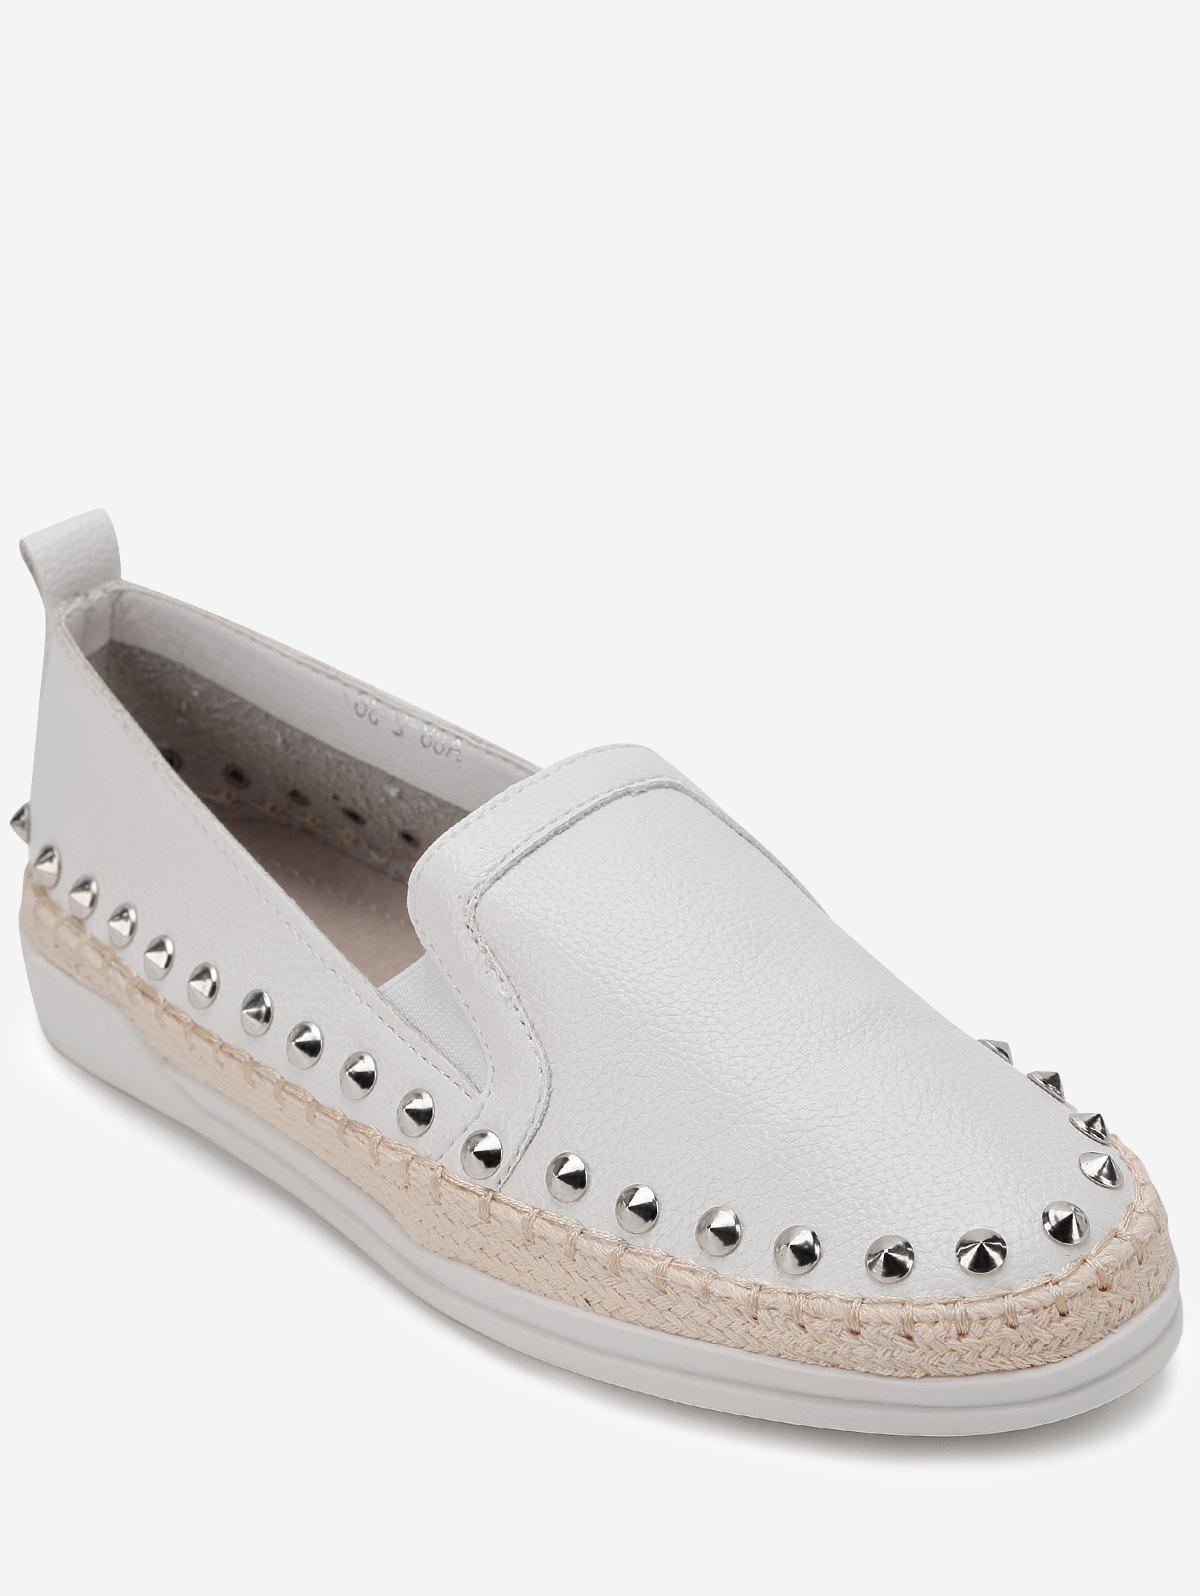 Baskets Mocassins Plats Cloutés